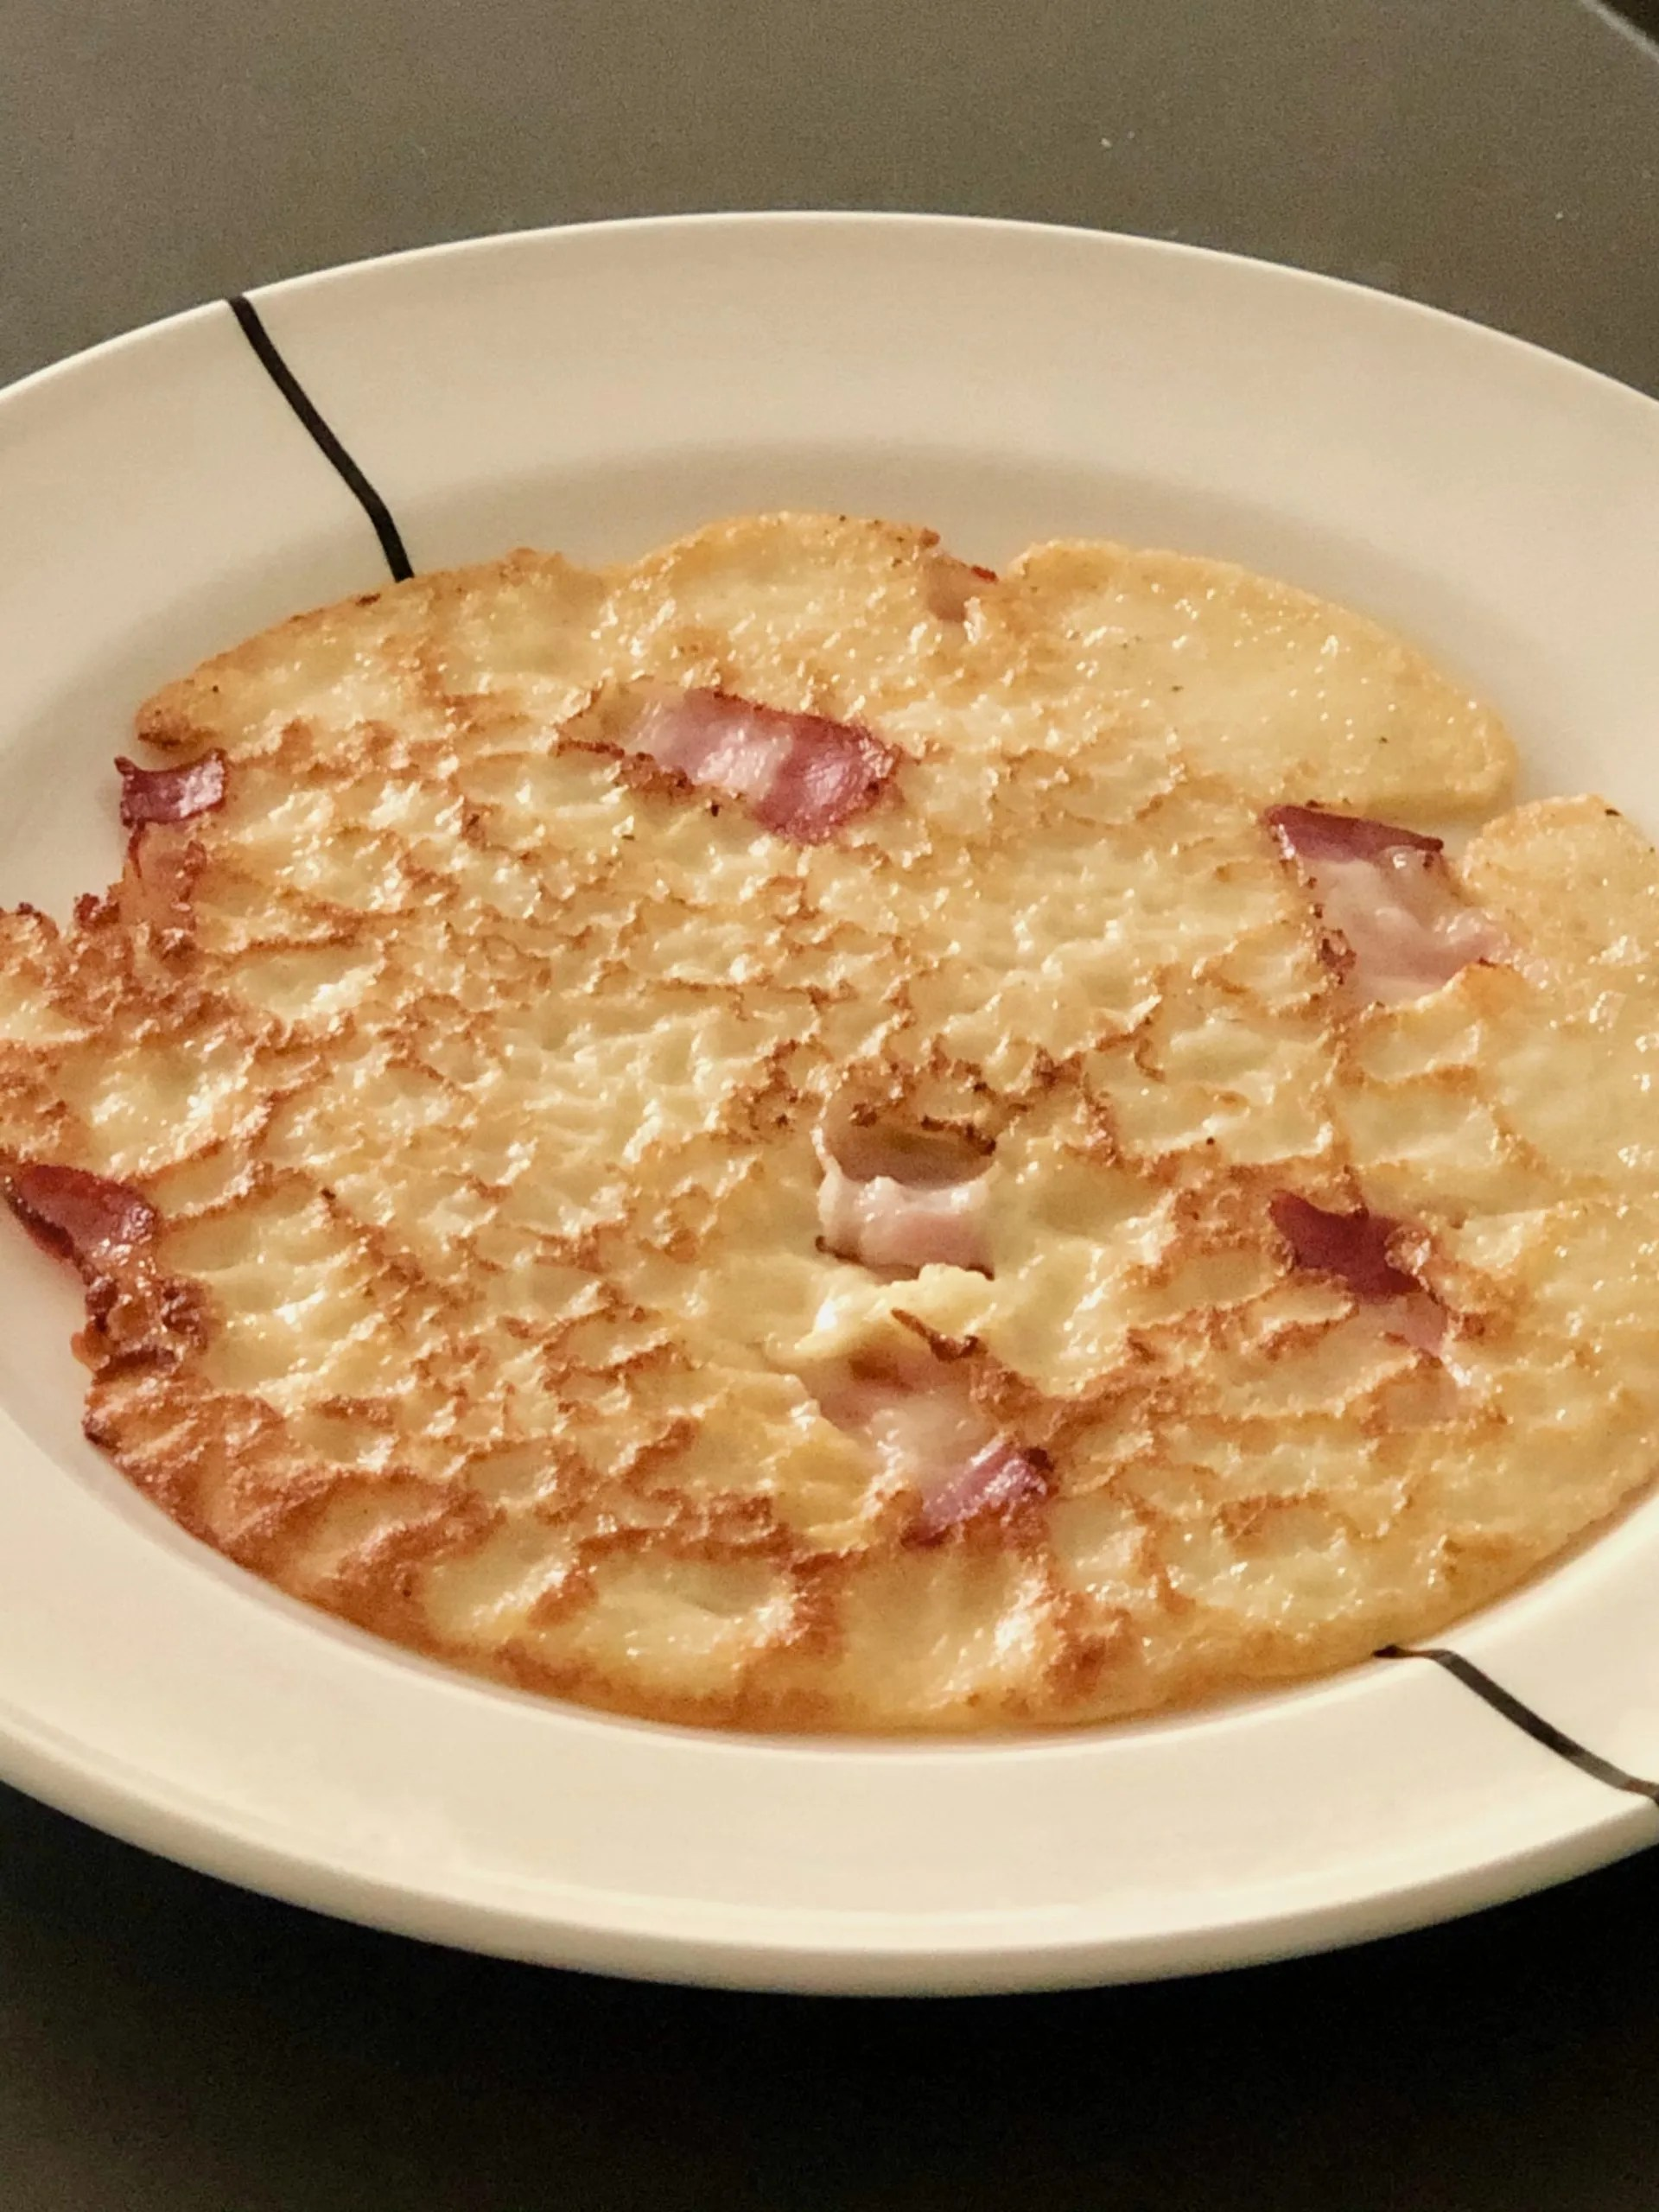 bacon pancake with syrup